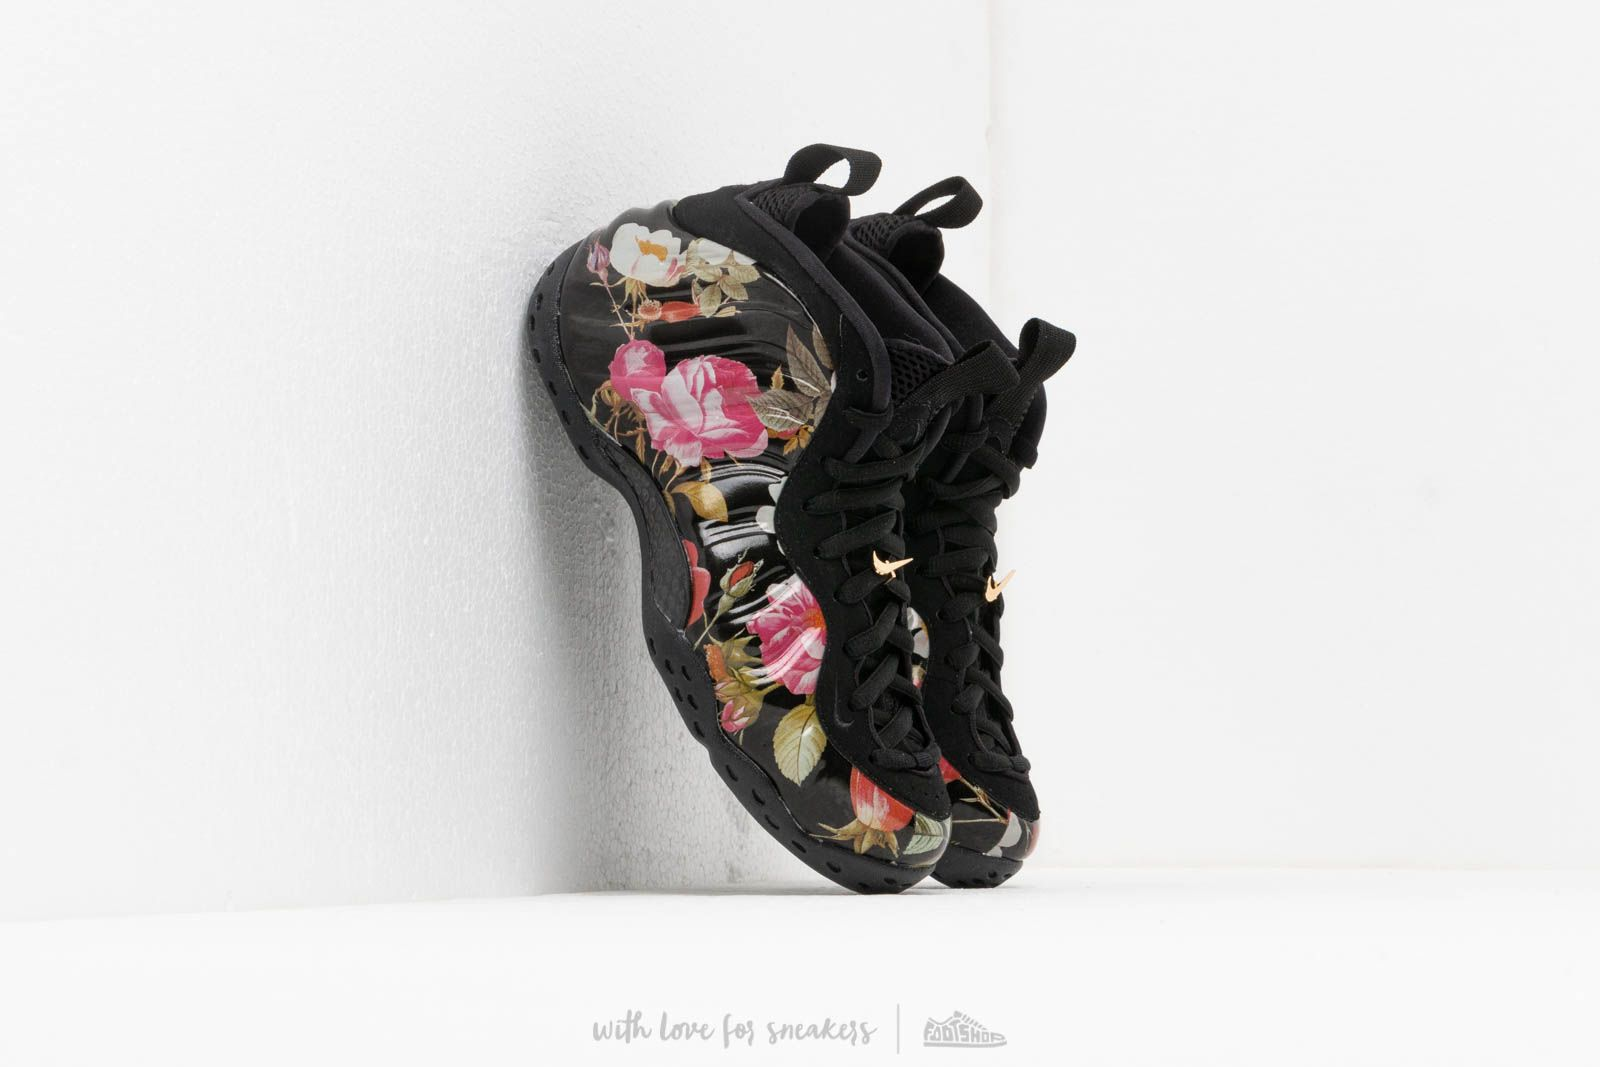 d2376292b17 Nike Air Foamposite One Floral Black  Black-White